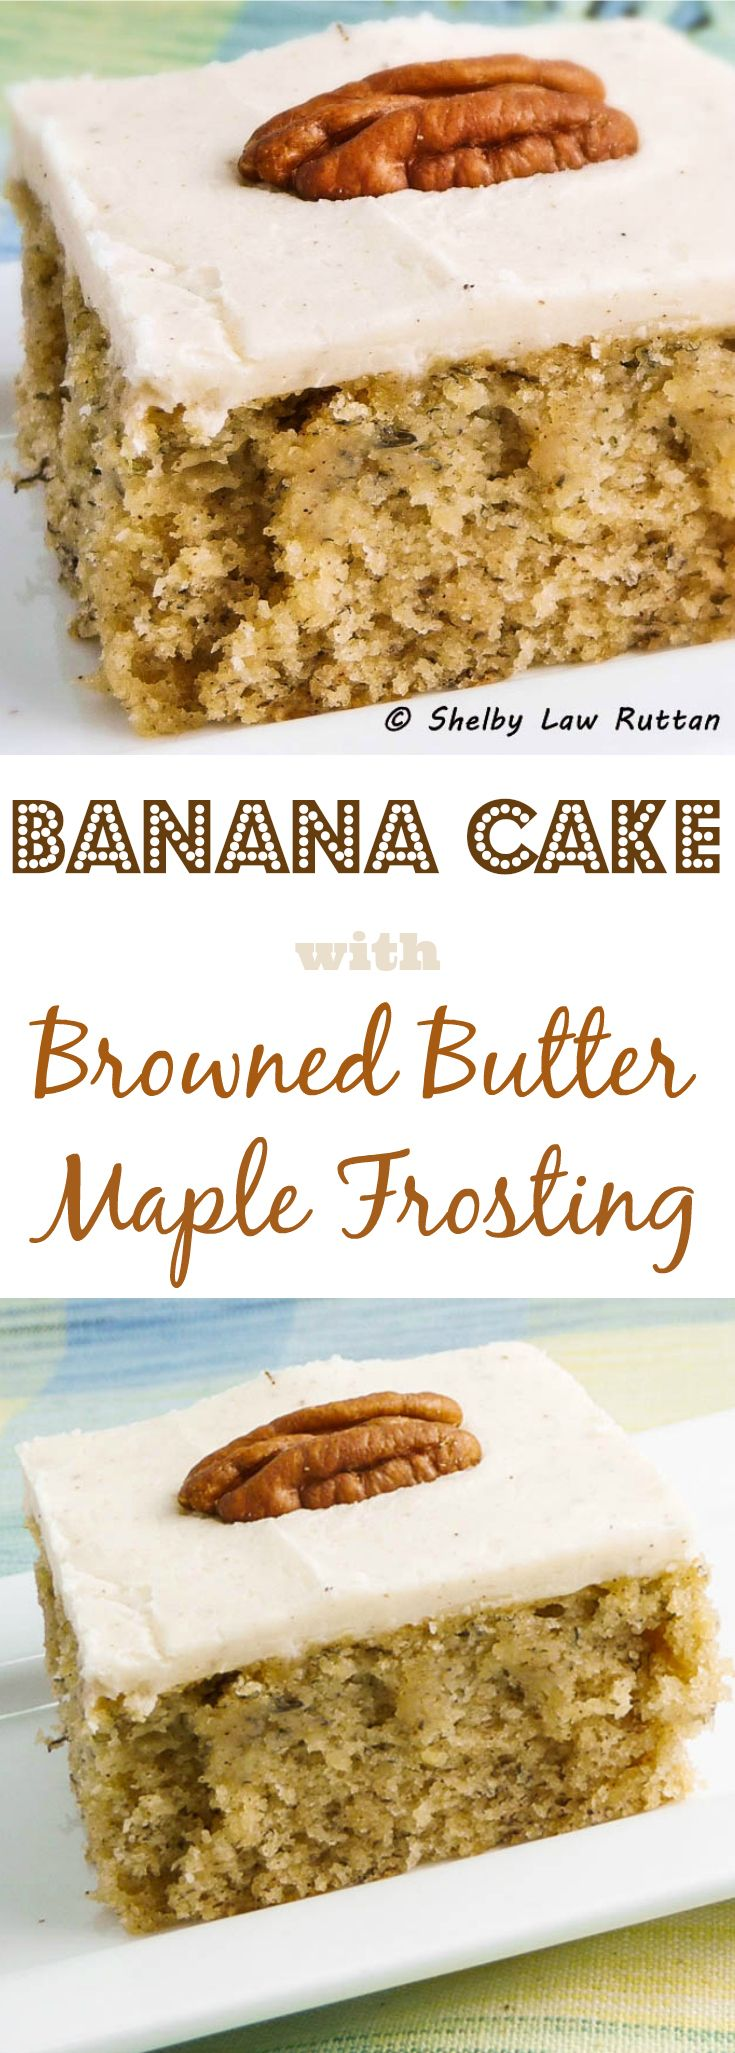 Banana Cake with Browned Butter Maple Frosting has amazing texture and flavor with that intense browned butter flavor that melds so well with bananas!